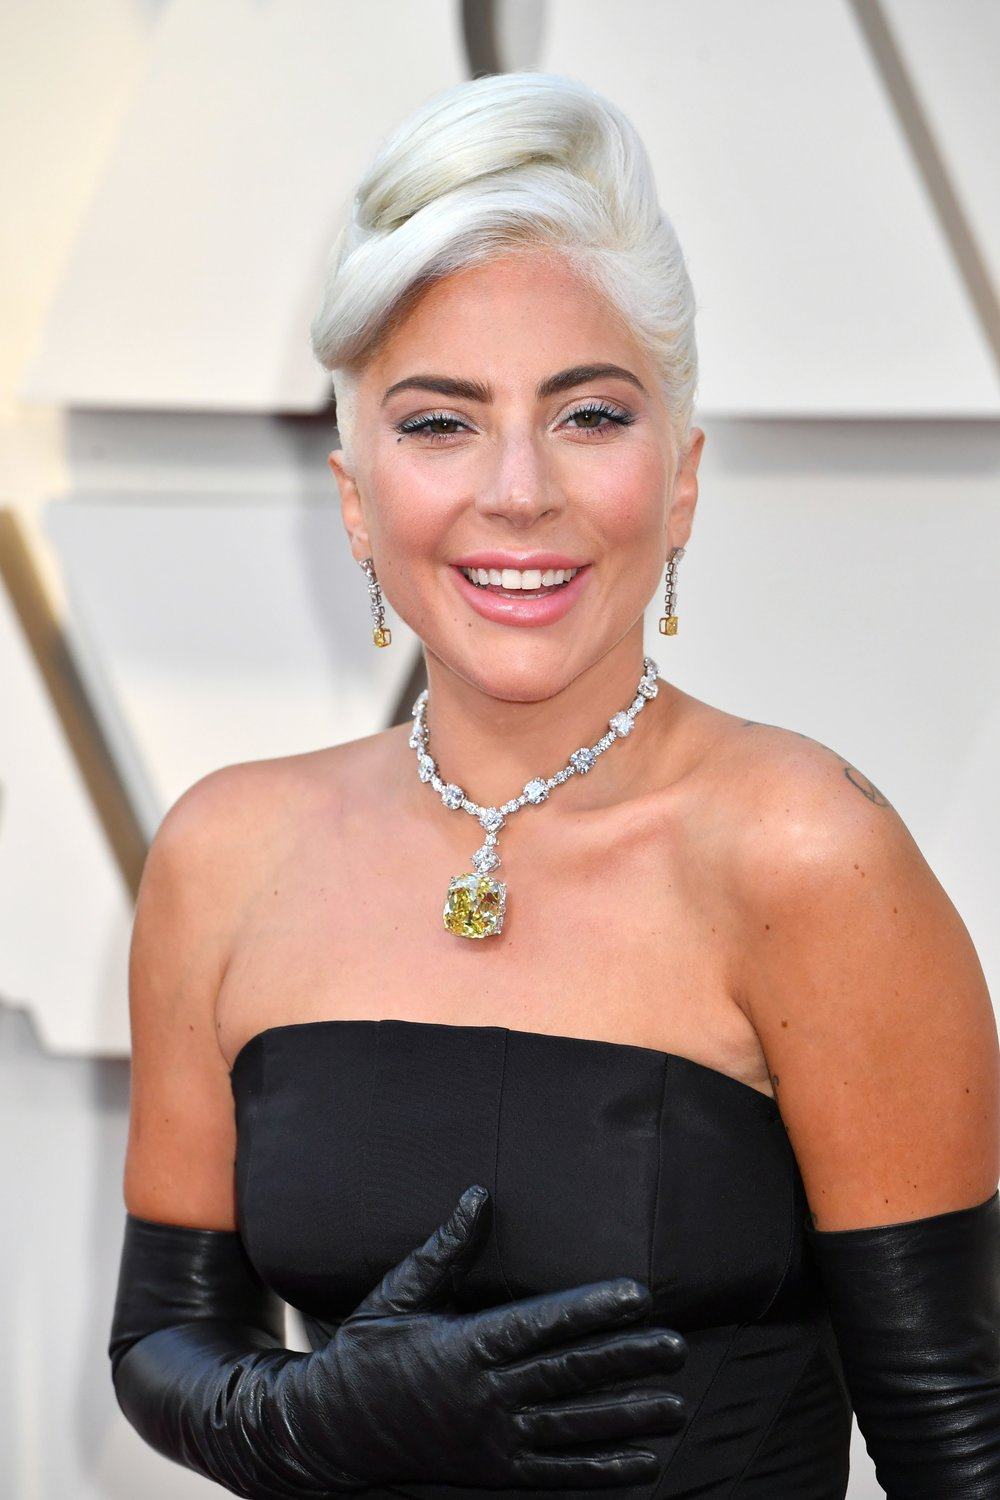 A history-making jewelry moment that only a superstar of Gaga's wattage could pull off: The Best Song winner arrived at the awards ceremony wearing the Tiffany diamond around her neck. The iconic fancy yellow diamond weighs a whopping 128.54 cts. and has not left home since 1961 when Audrey Hepburn wore it for Breakfast at Tiffany's promotional photos. Worn as a pendant hung from a necklace of cushion-cut and round brilliant white diamonds, this was the most talked-about jewel of the night. -